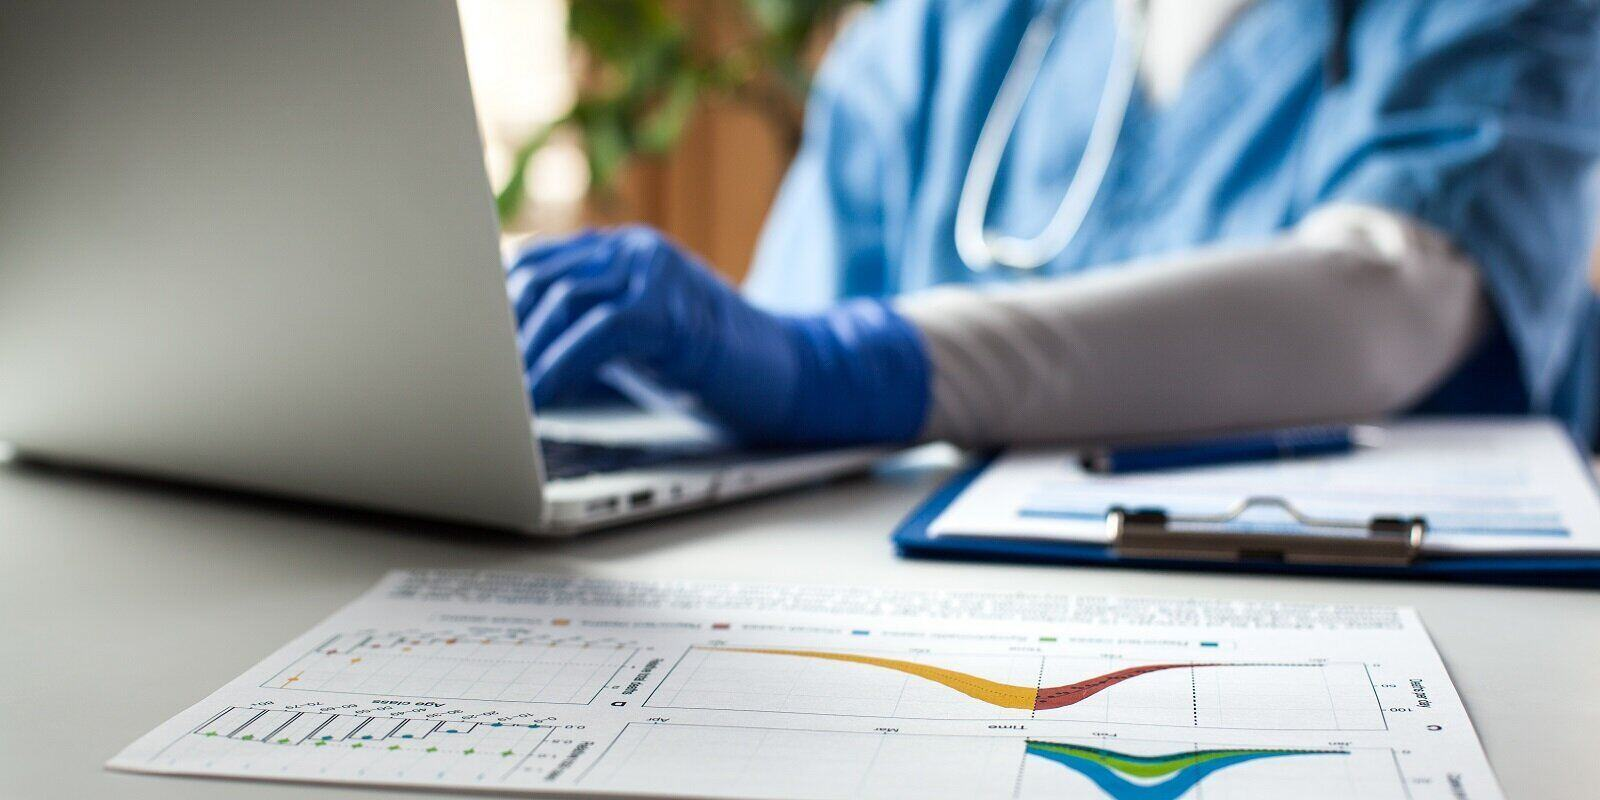 doctor working on laptop computer analyzing graphs charts